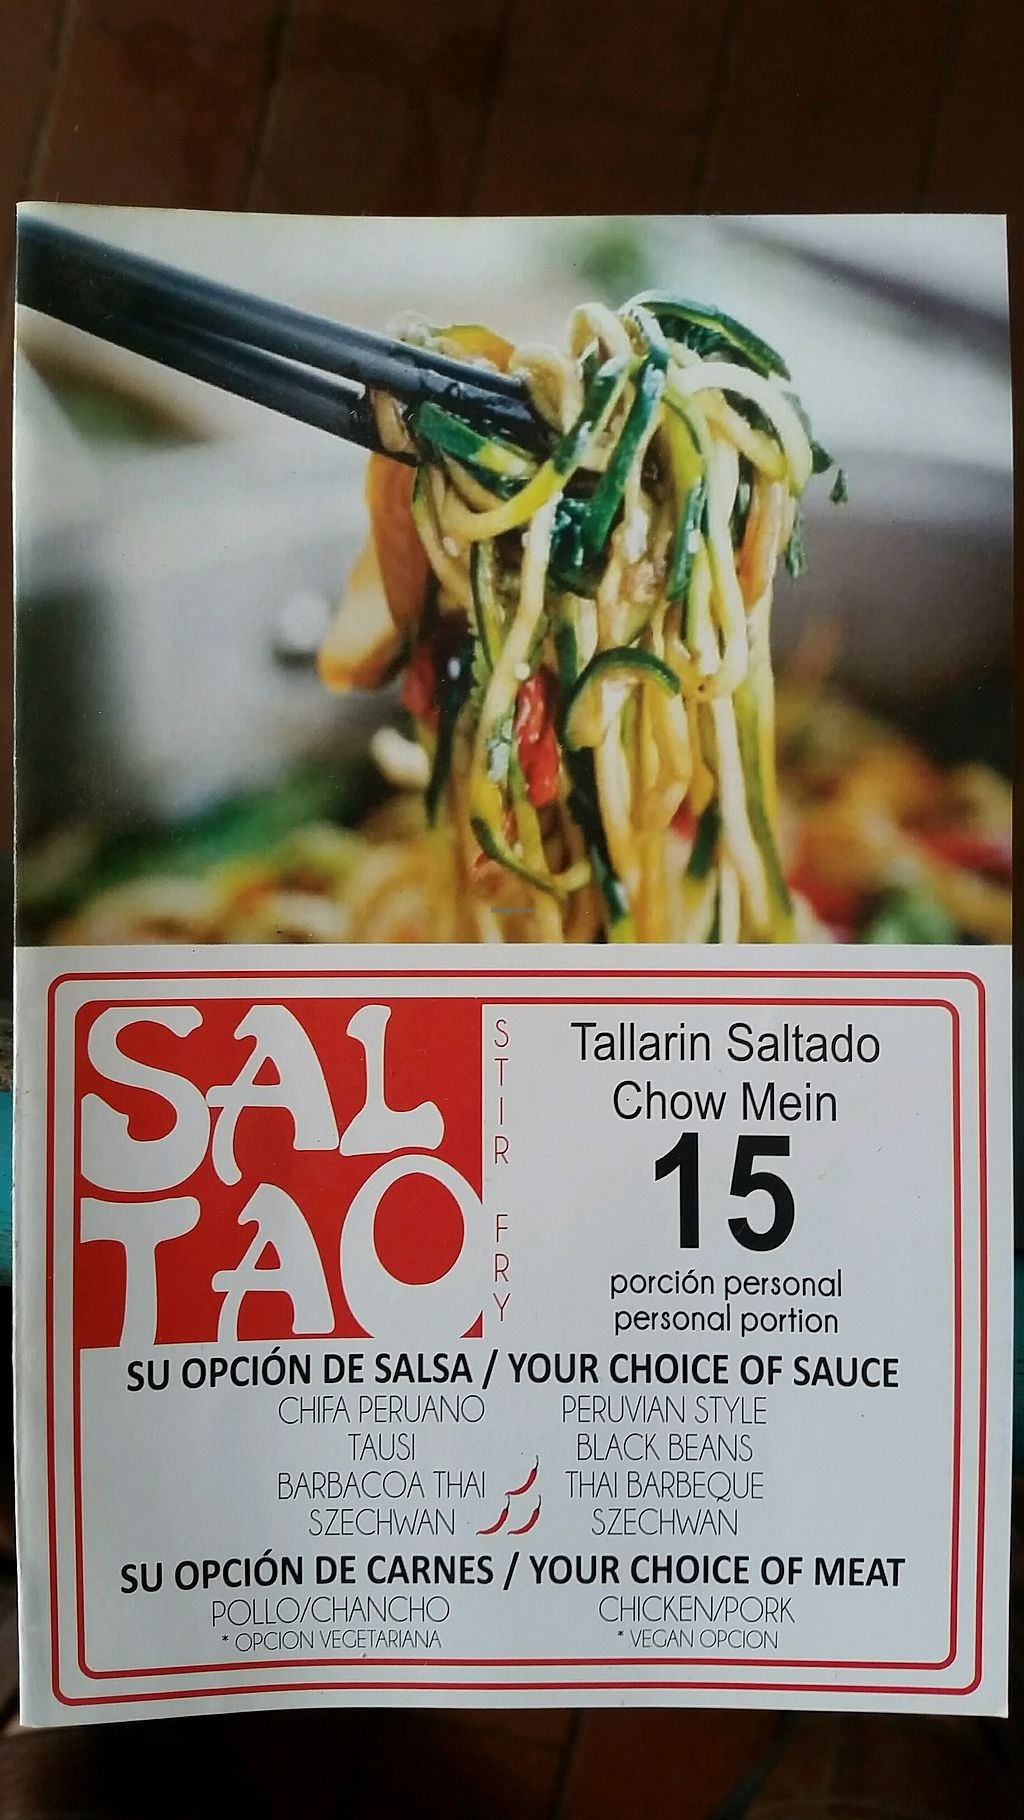 """Photo of Sal Tao Stir Fry  by <a href=""""/members/profile/DrBB"""">DrBB</a> <br/>menu <br/> February 4, 2018  - <a href='/contact/abuse/image/111185/354940'>Report</a>"""